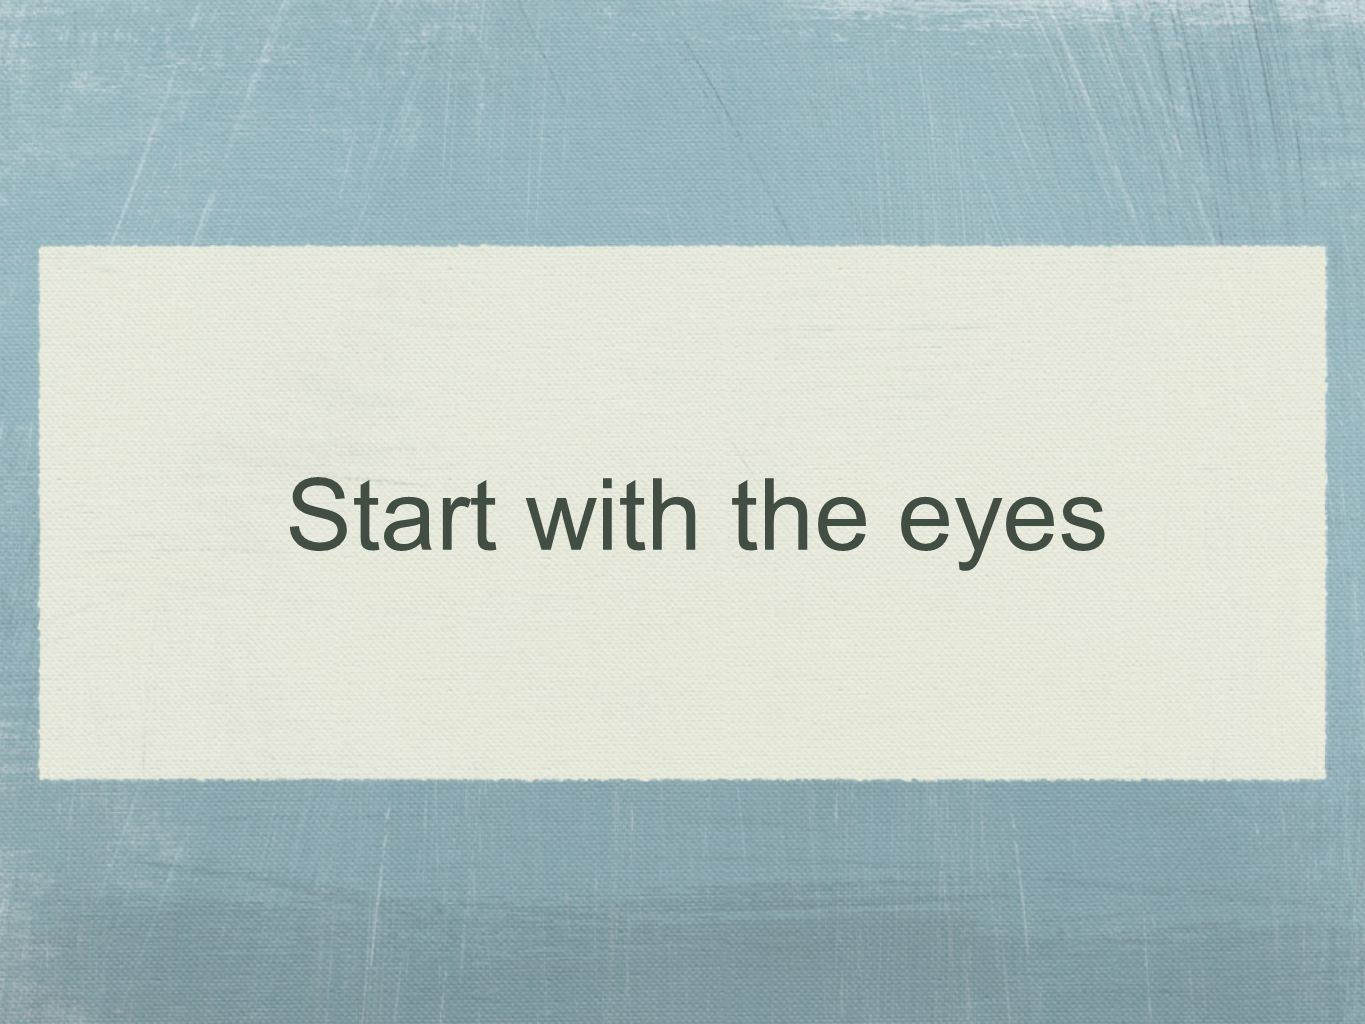 Start with the eyes